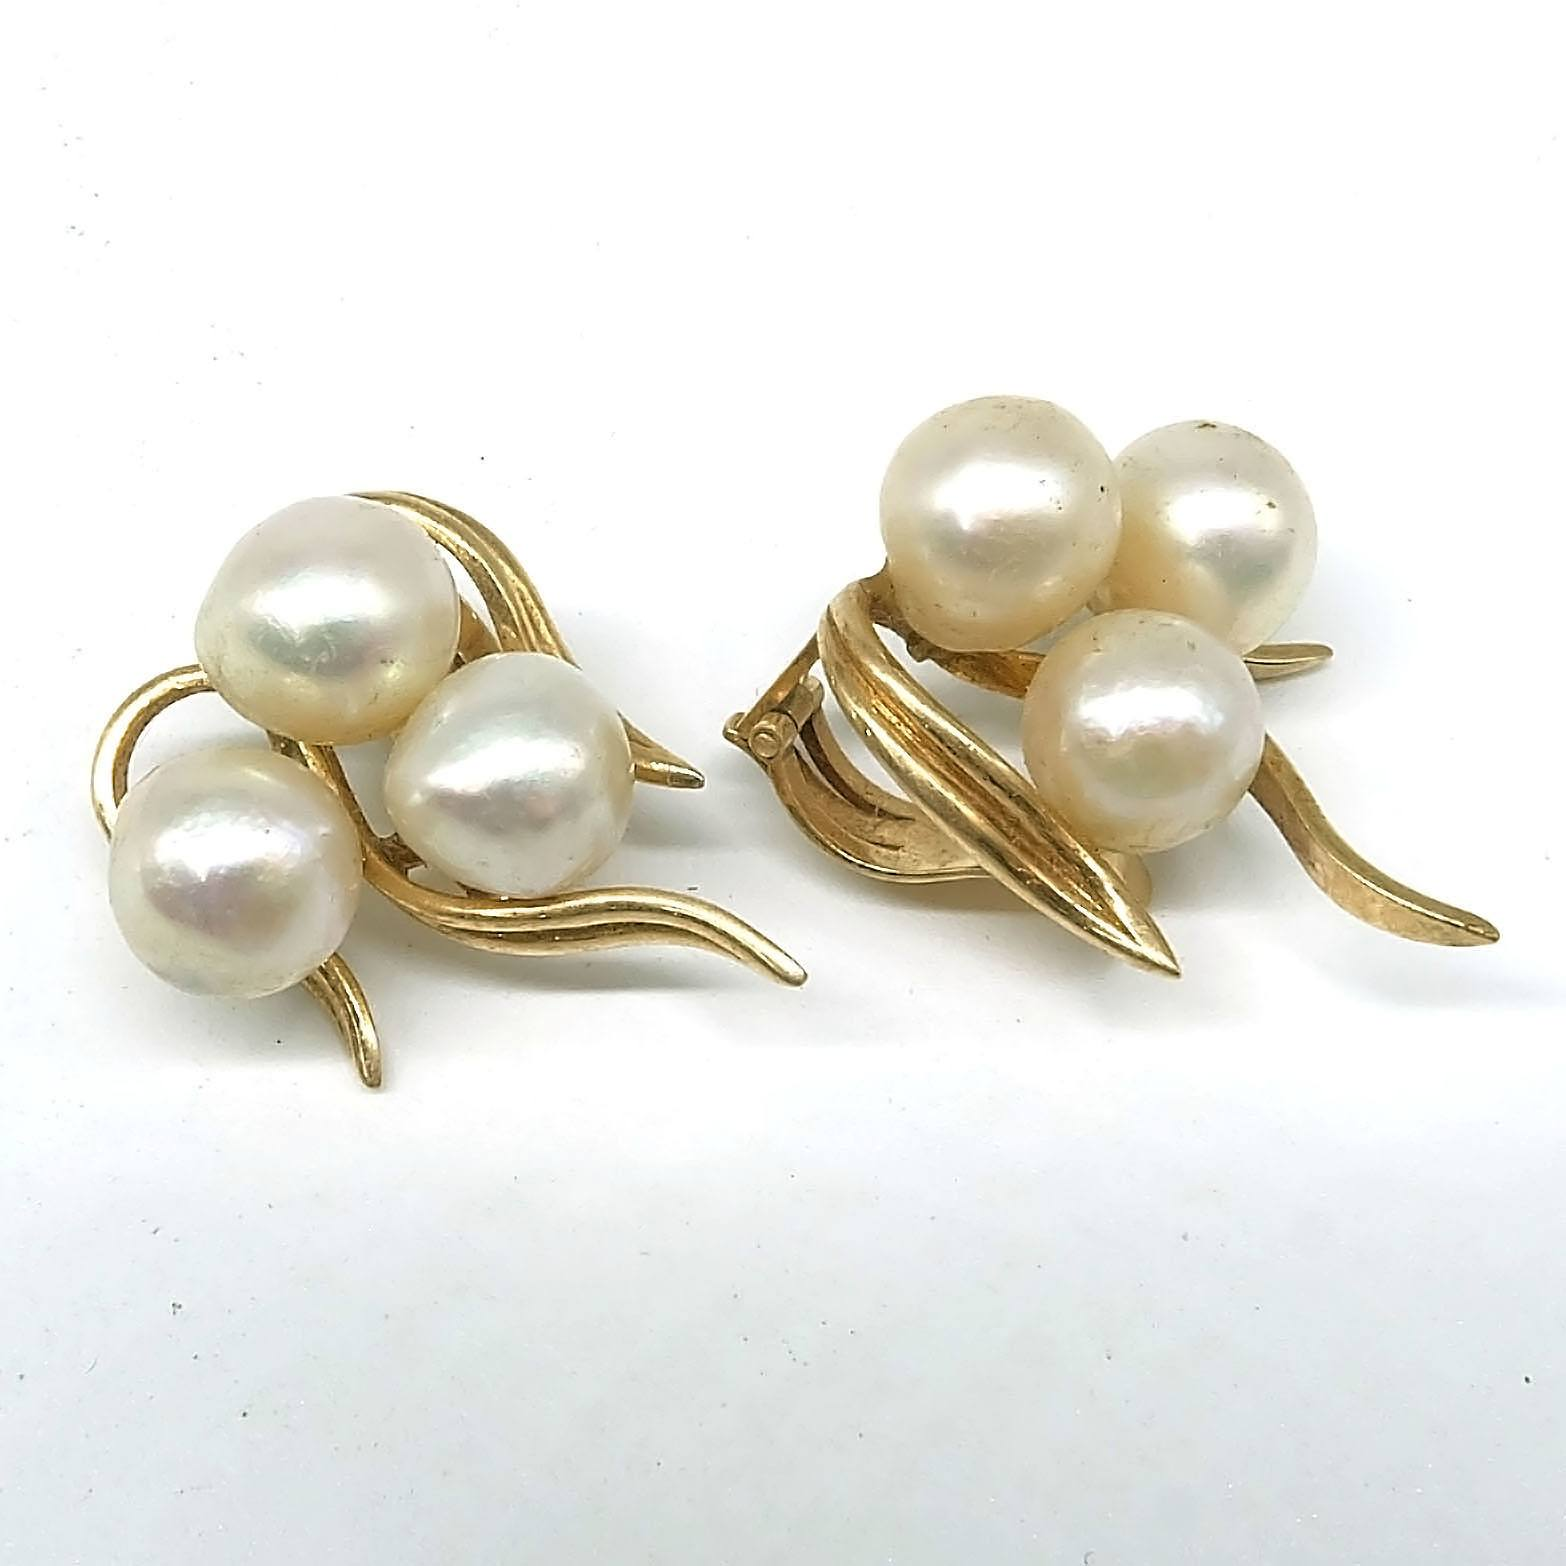 'Pair of 14ct Yellow Gold Cultured Pearl Clip on Earrings, 10.6g'